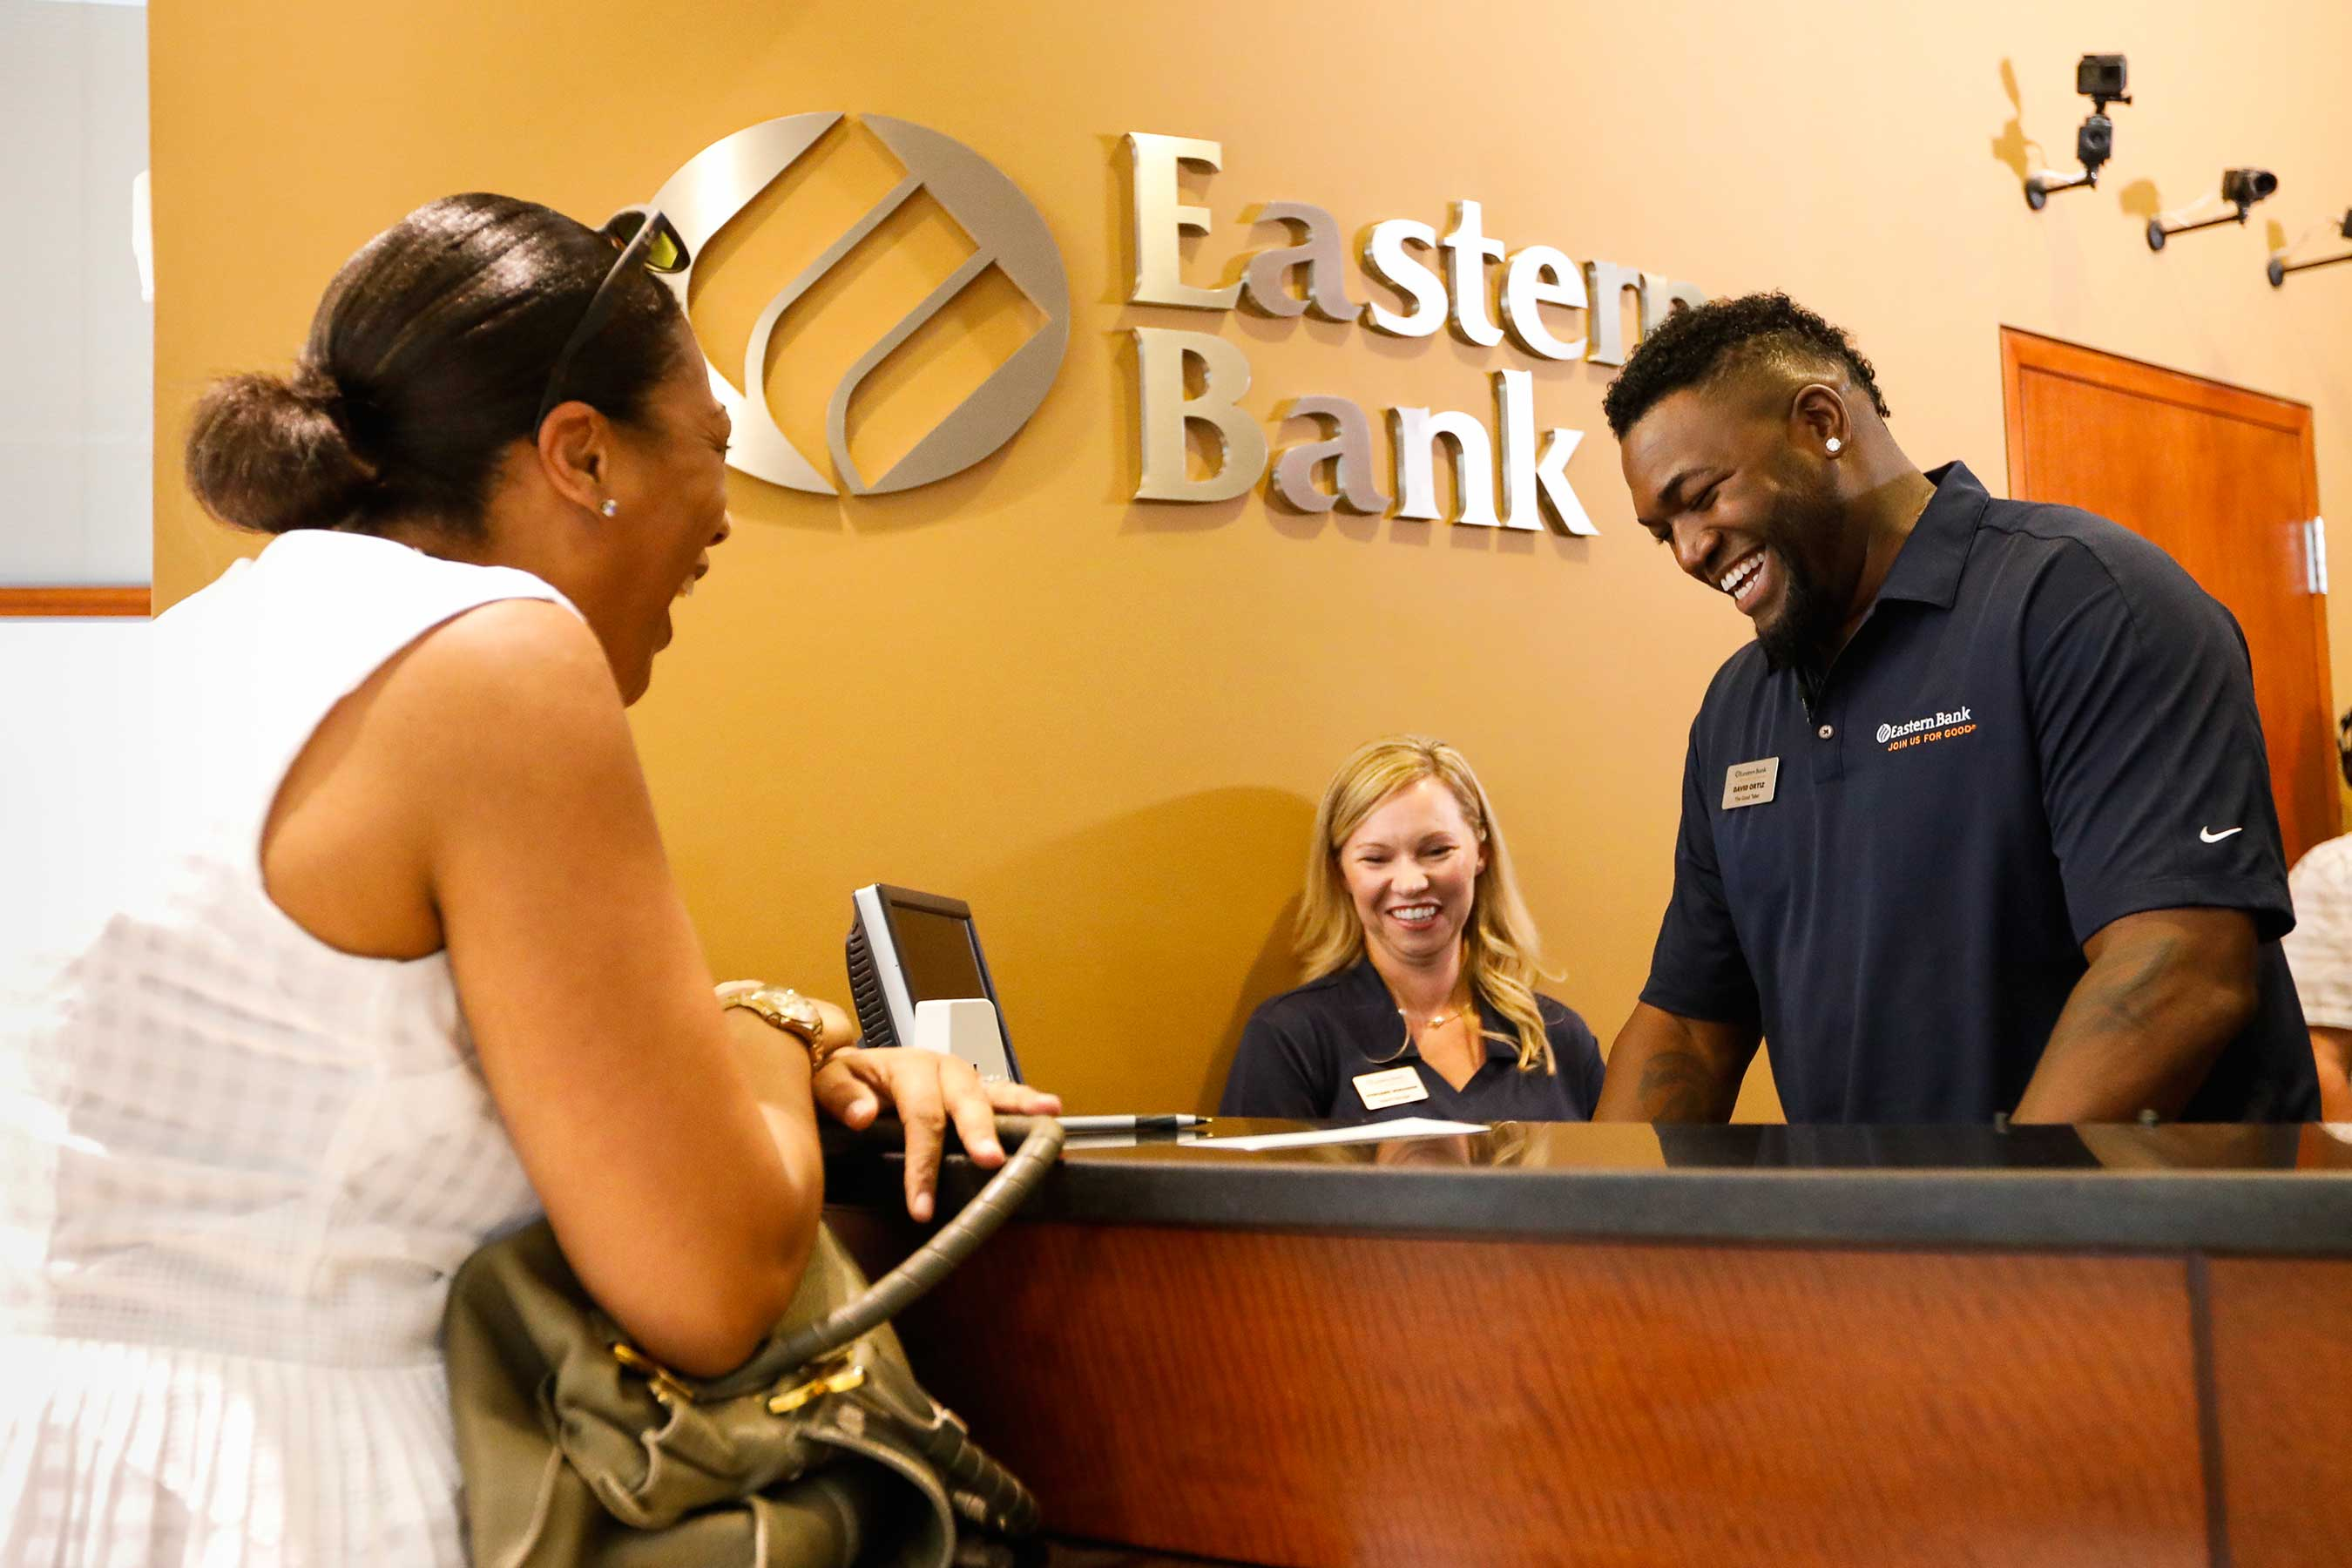 Baseball icon David Ortiz surprises an unsuspecting Eastern Bank customer during an event in Boston on September 12, 2017.